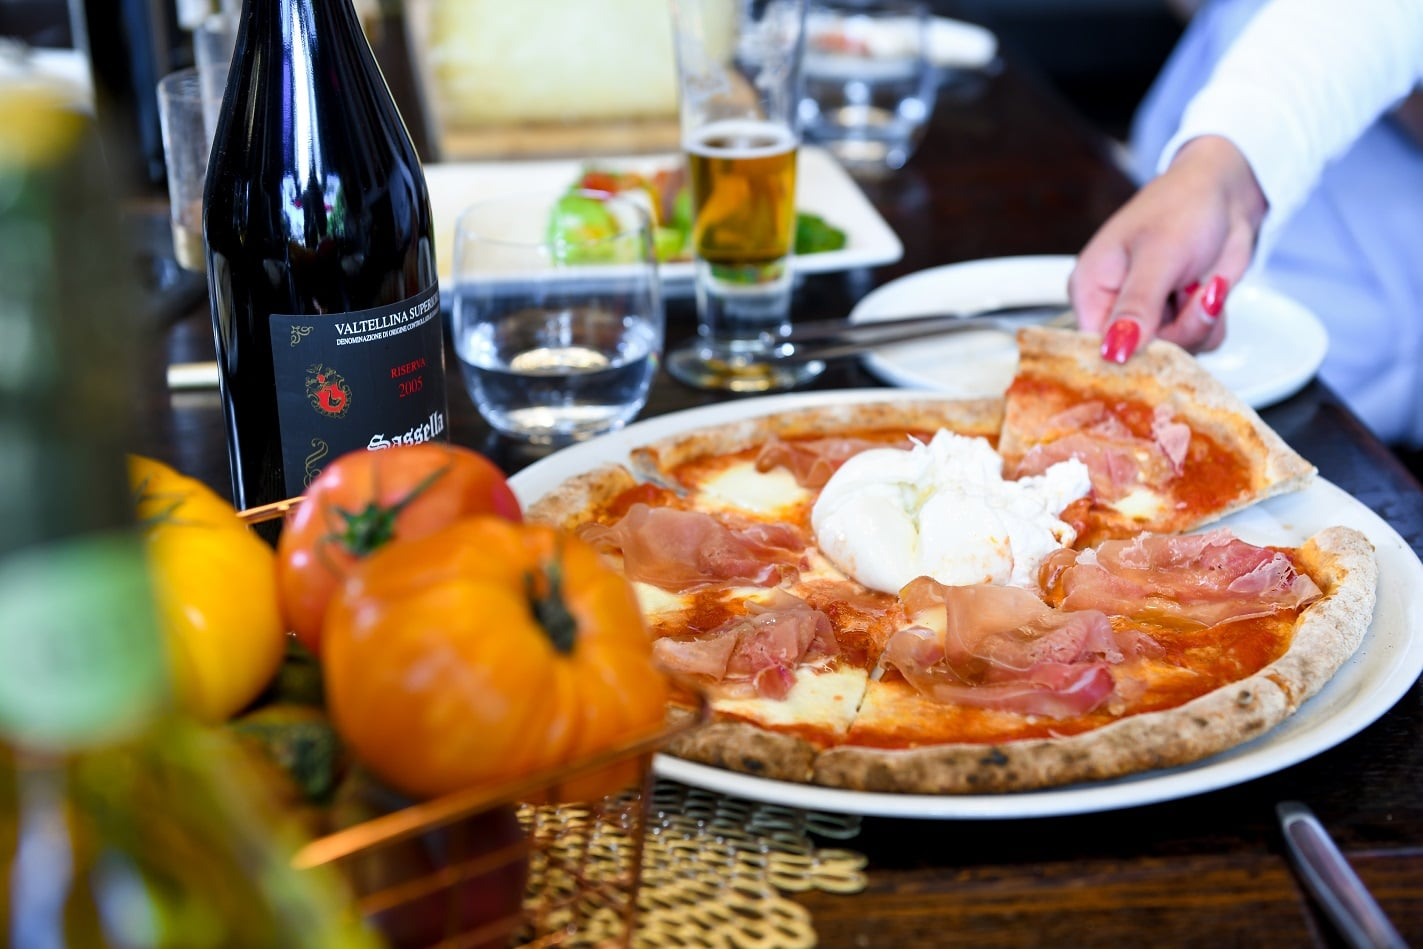 Ambrogio15 restaurant in Pacific Beach serves Milanese style pizza and biodynamic wines